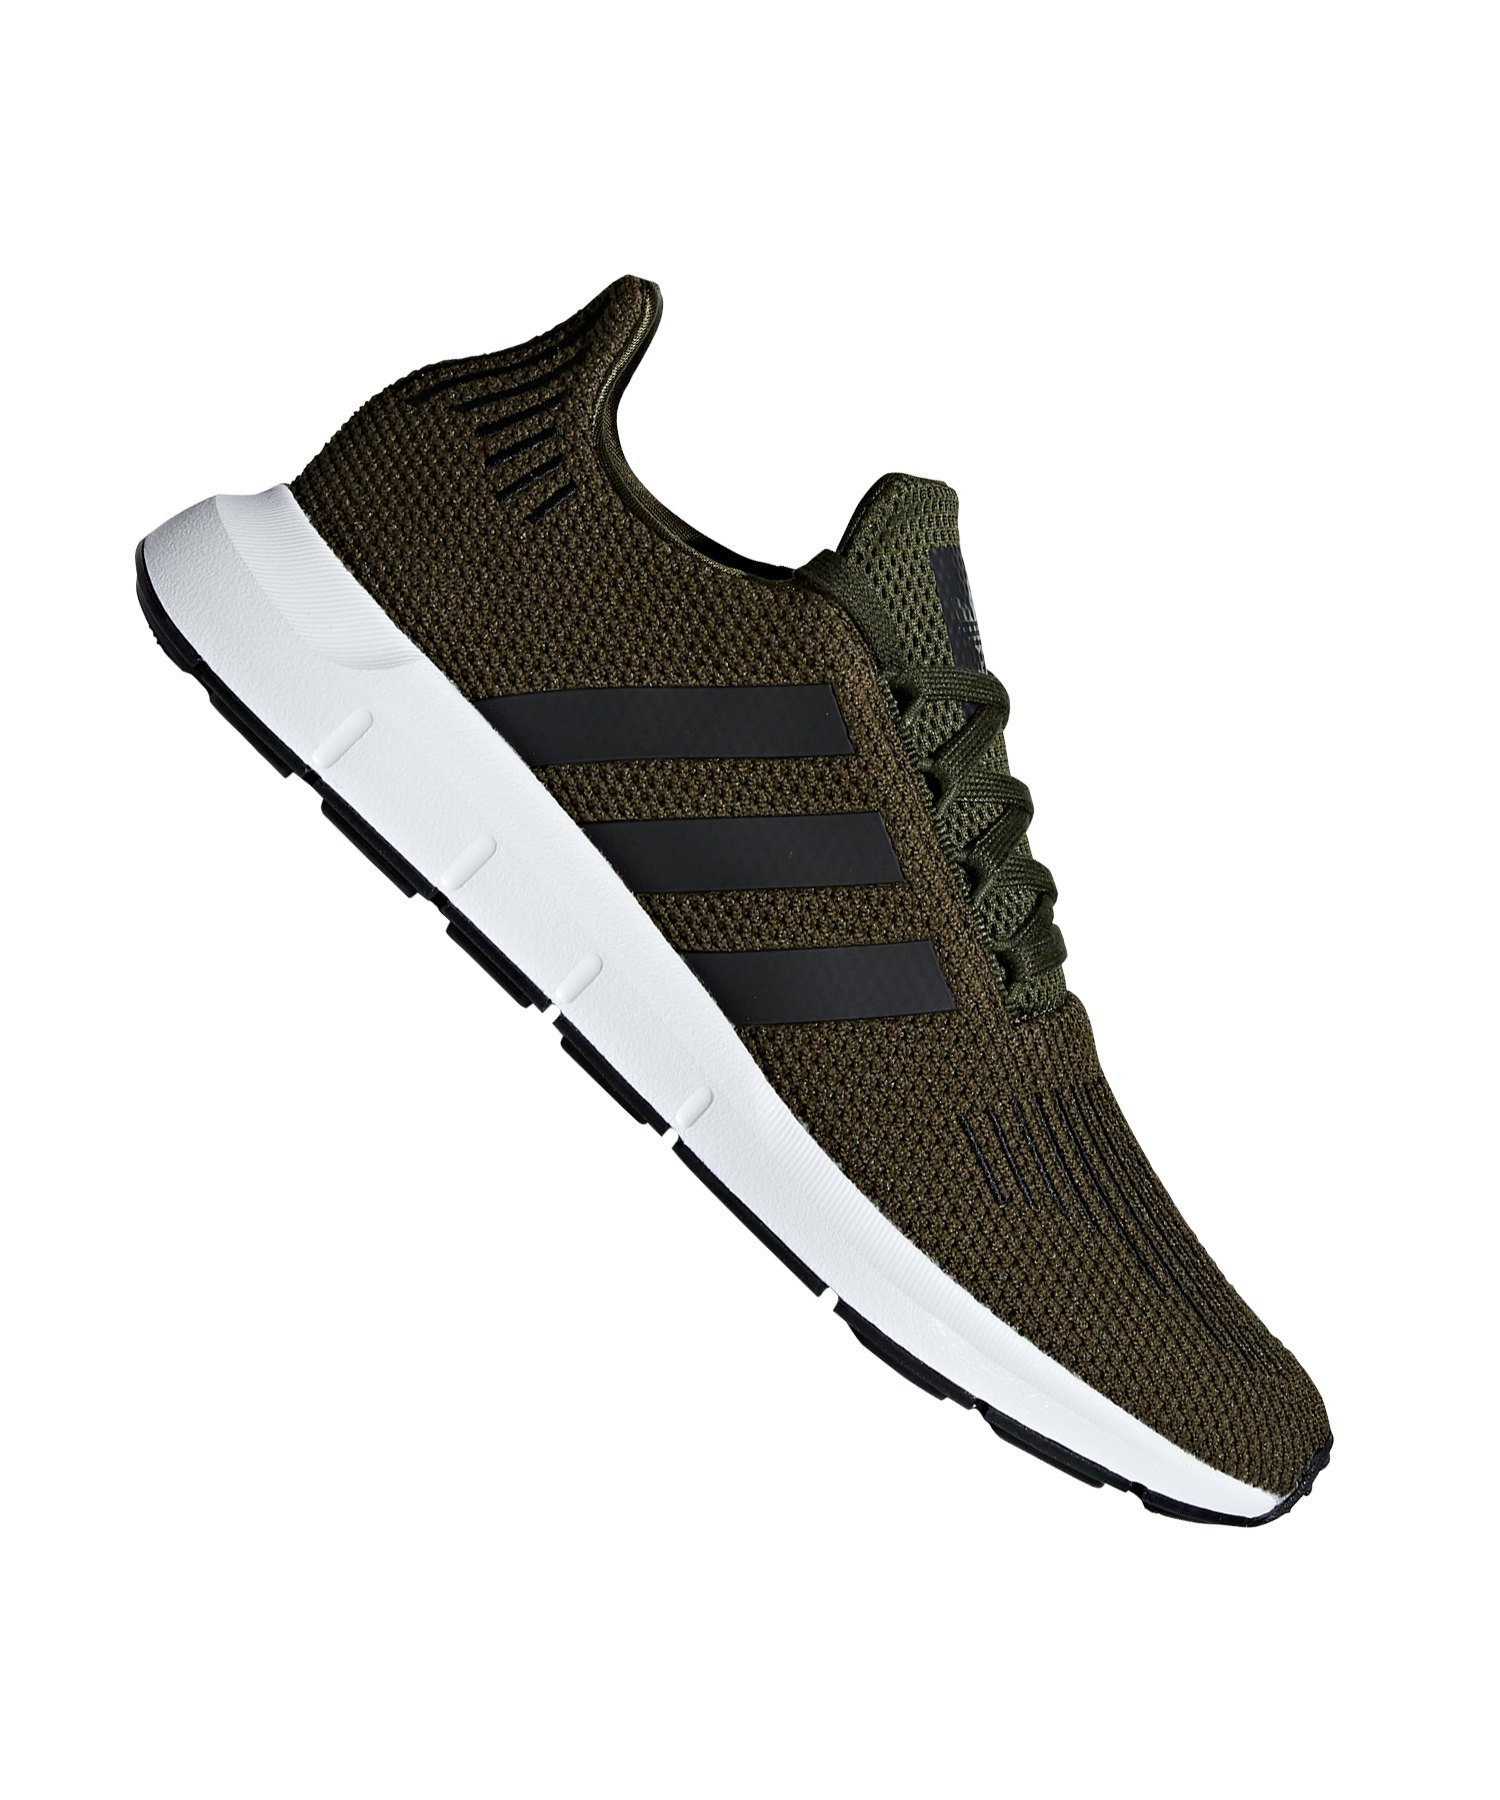 7f15d67cb9f0c4 adidas Originals Swift Run Sneaker Grün Schwarz - gruen